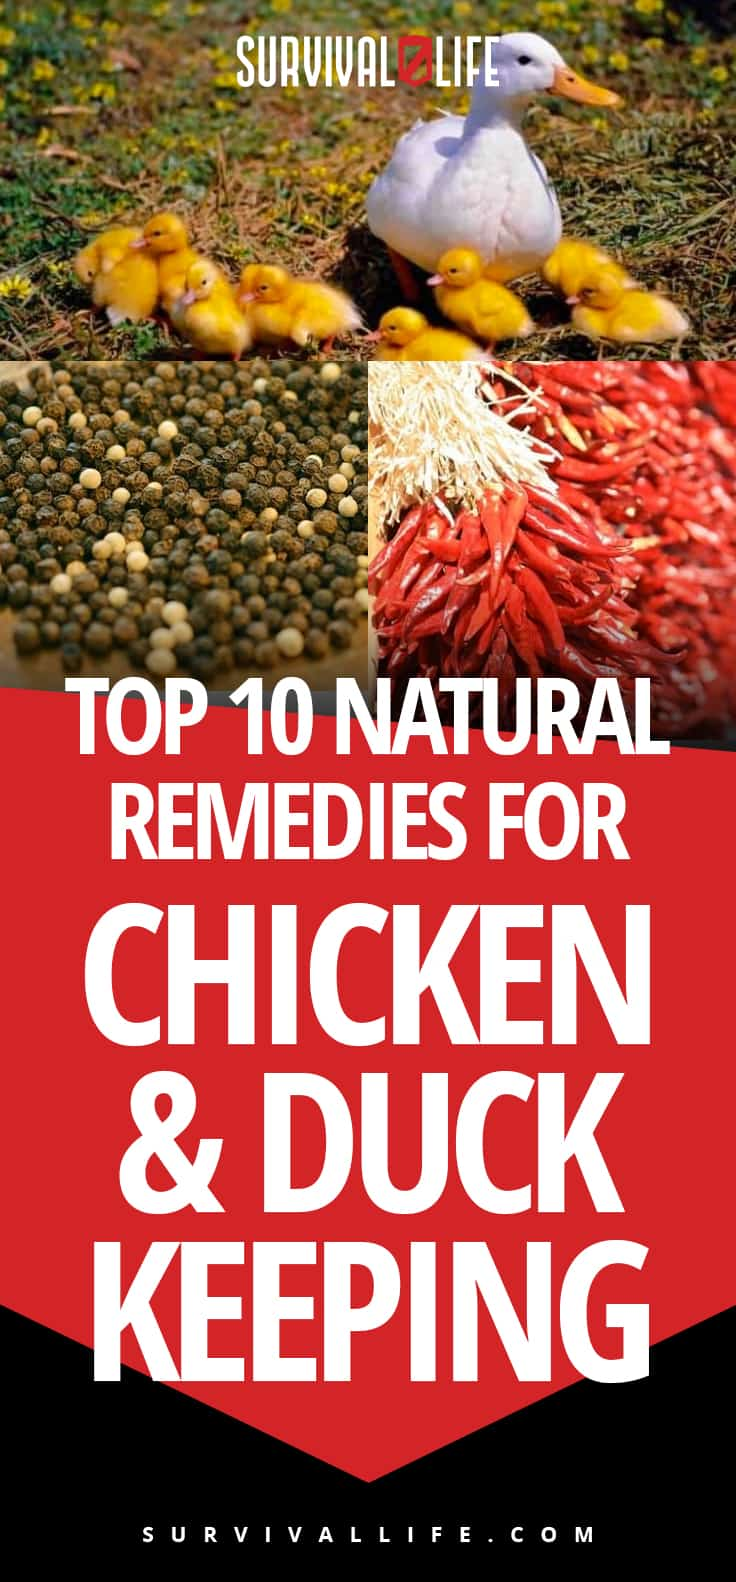 Chicken And Duck Keeping | Top Natural Remedies For Your Sick Flock | https://survivallife.com/chicken-and-duck-keeping/